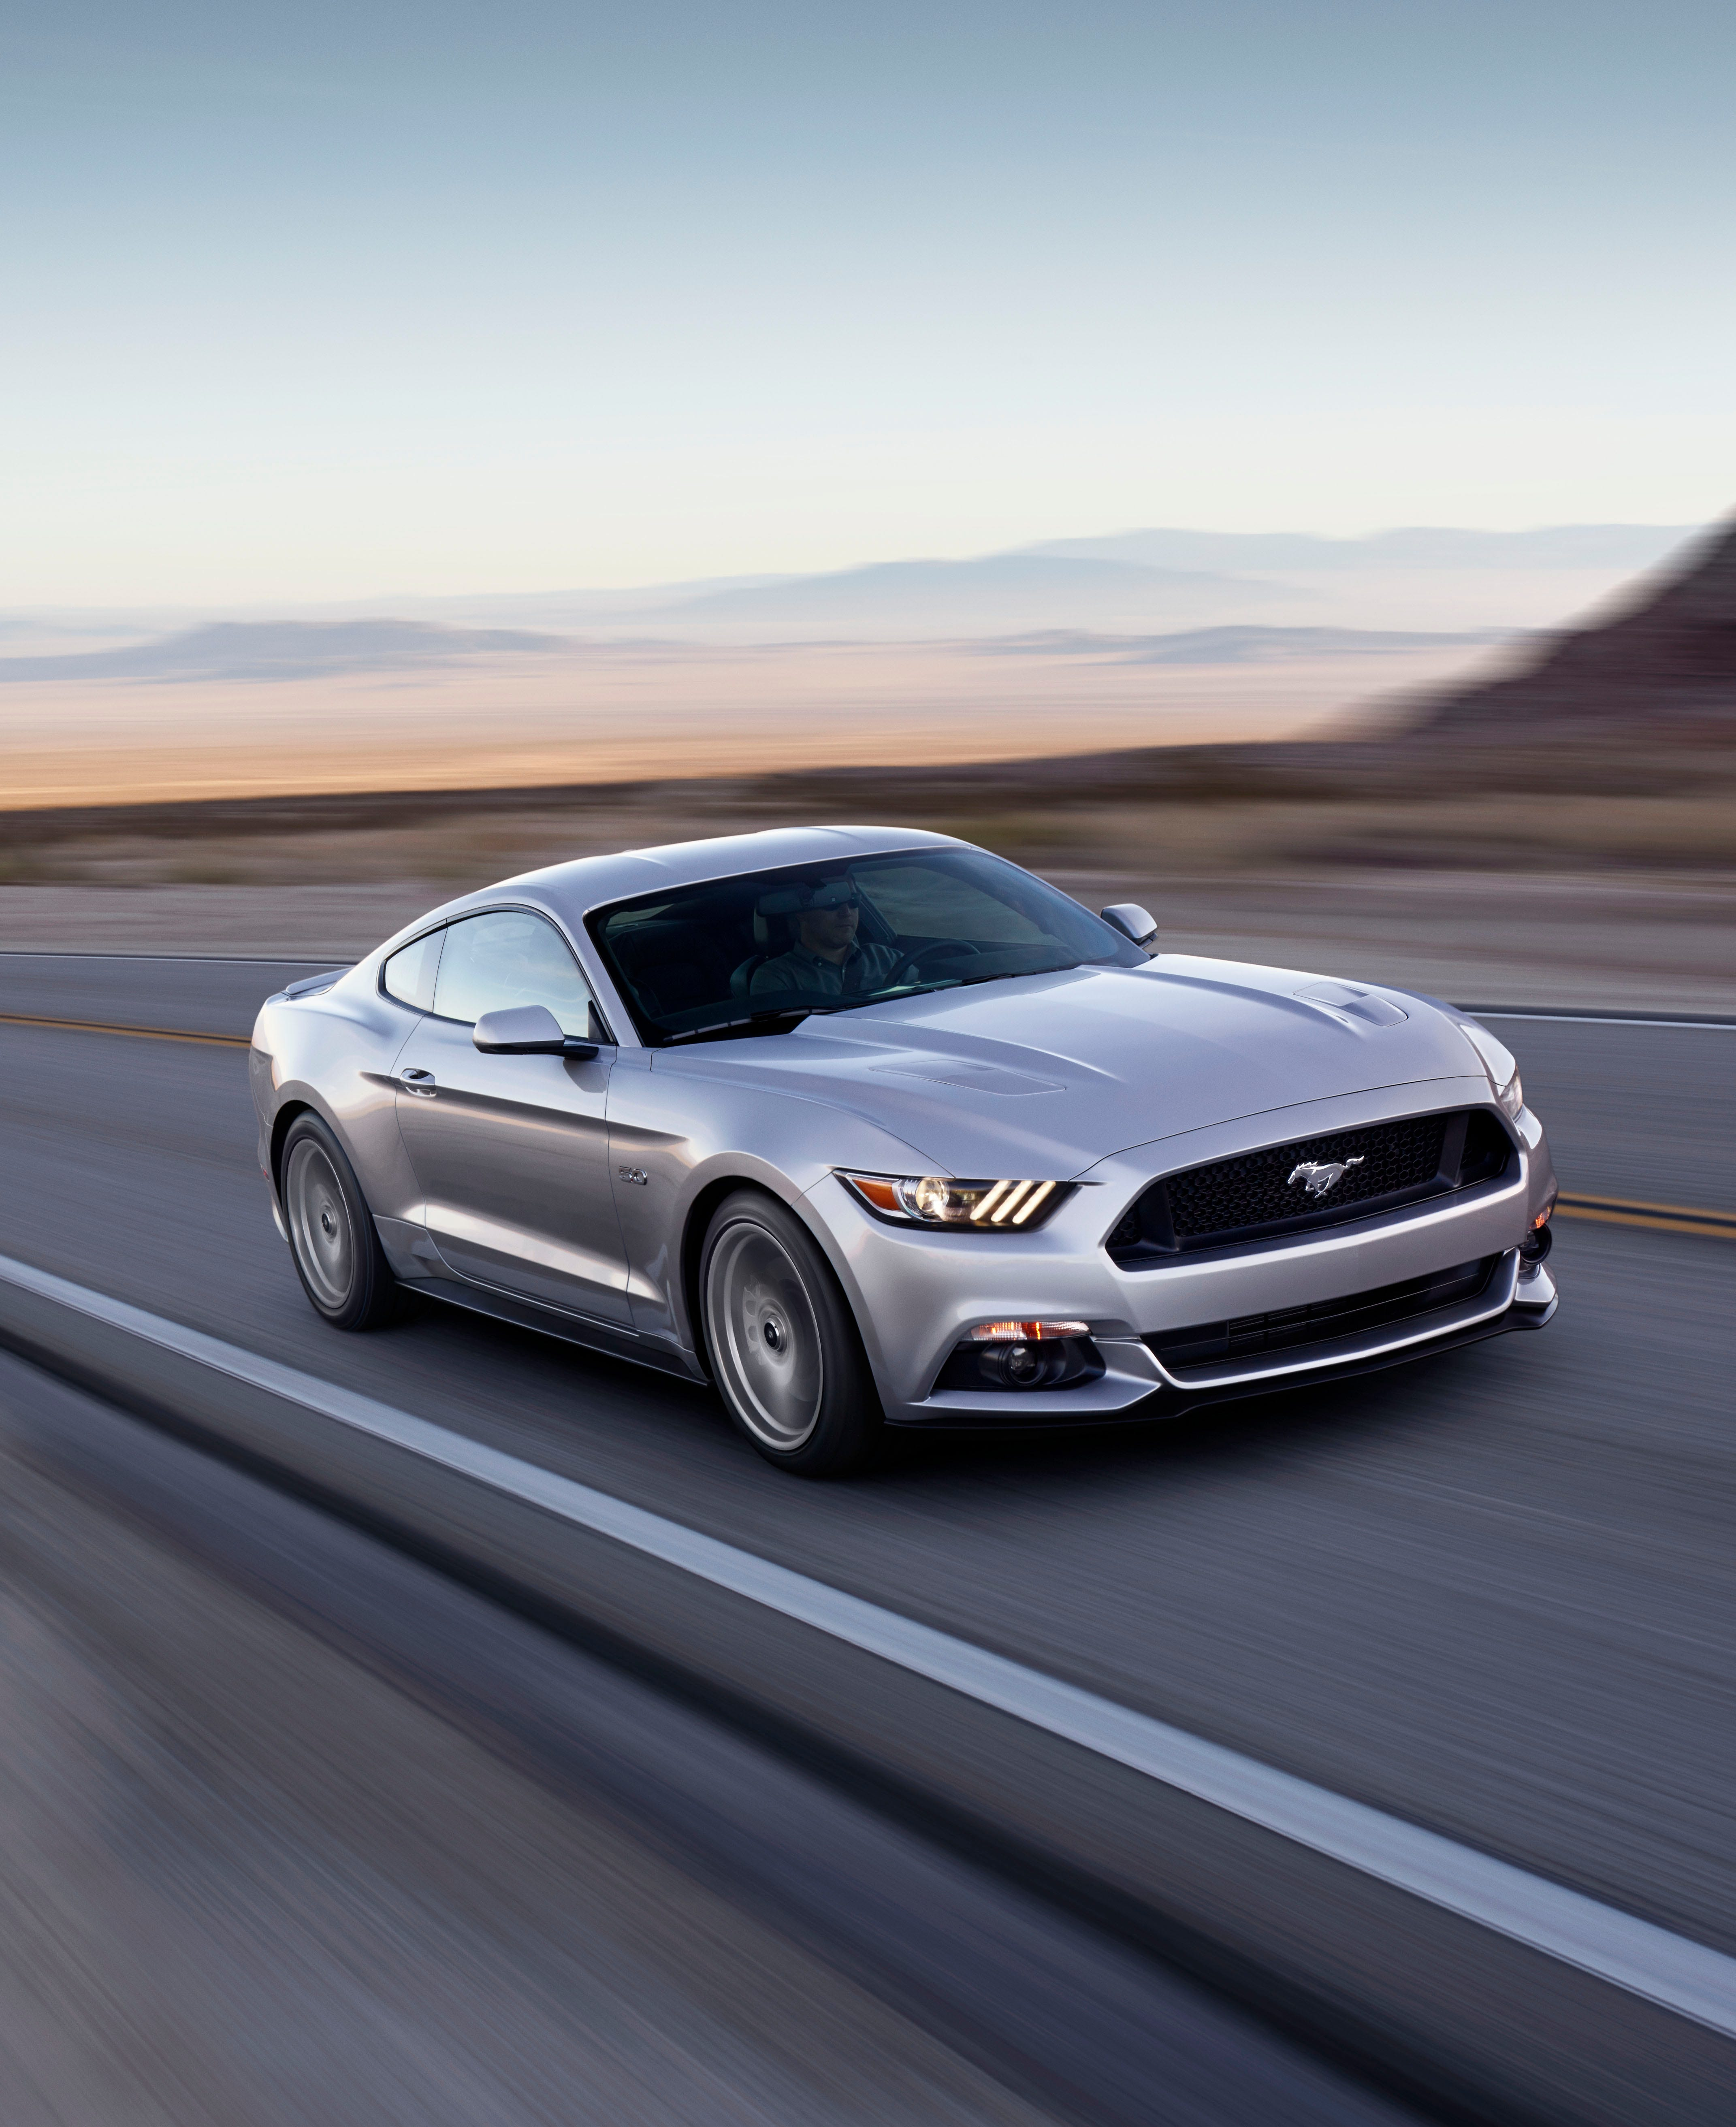 The redesigned 2015 Ford Mustang GT coupe. & Ford Mustang sales leap ahead of other sporty cars markmcfarlin.com